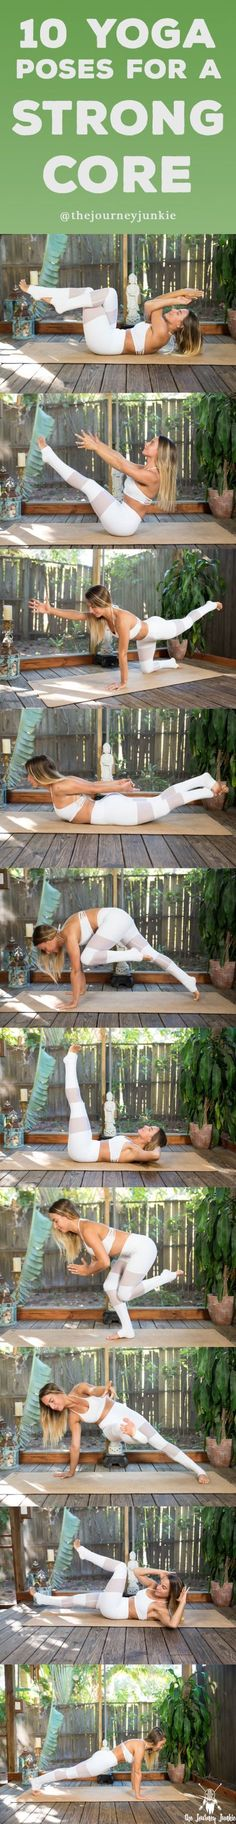 Health And Fitness: 10 Poses for a Strong & Powerful Core - The Journe...